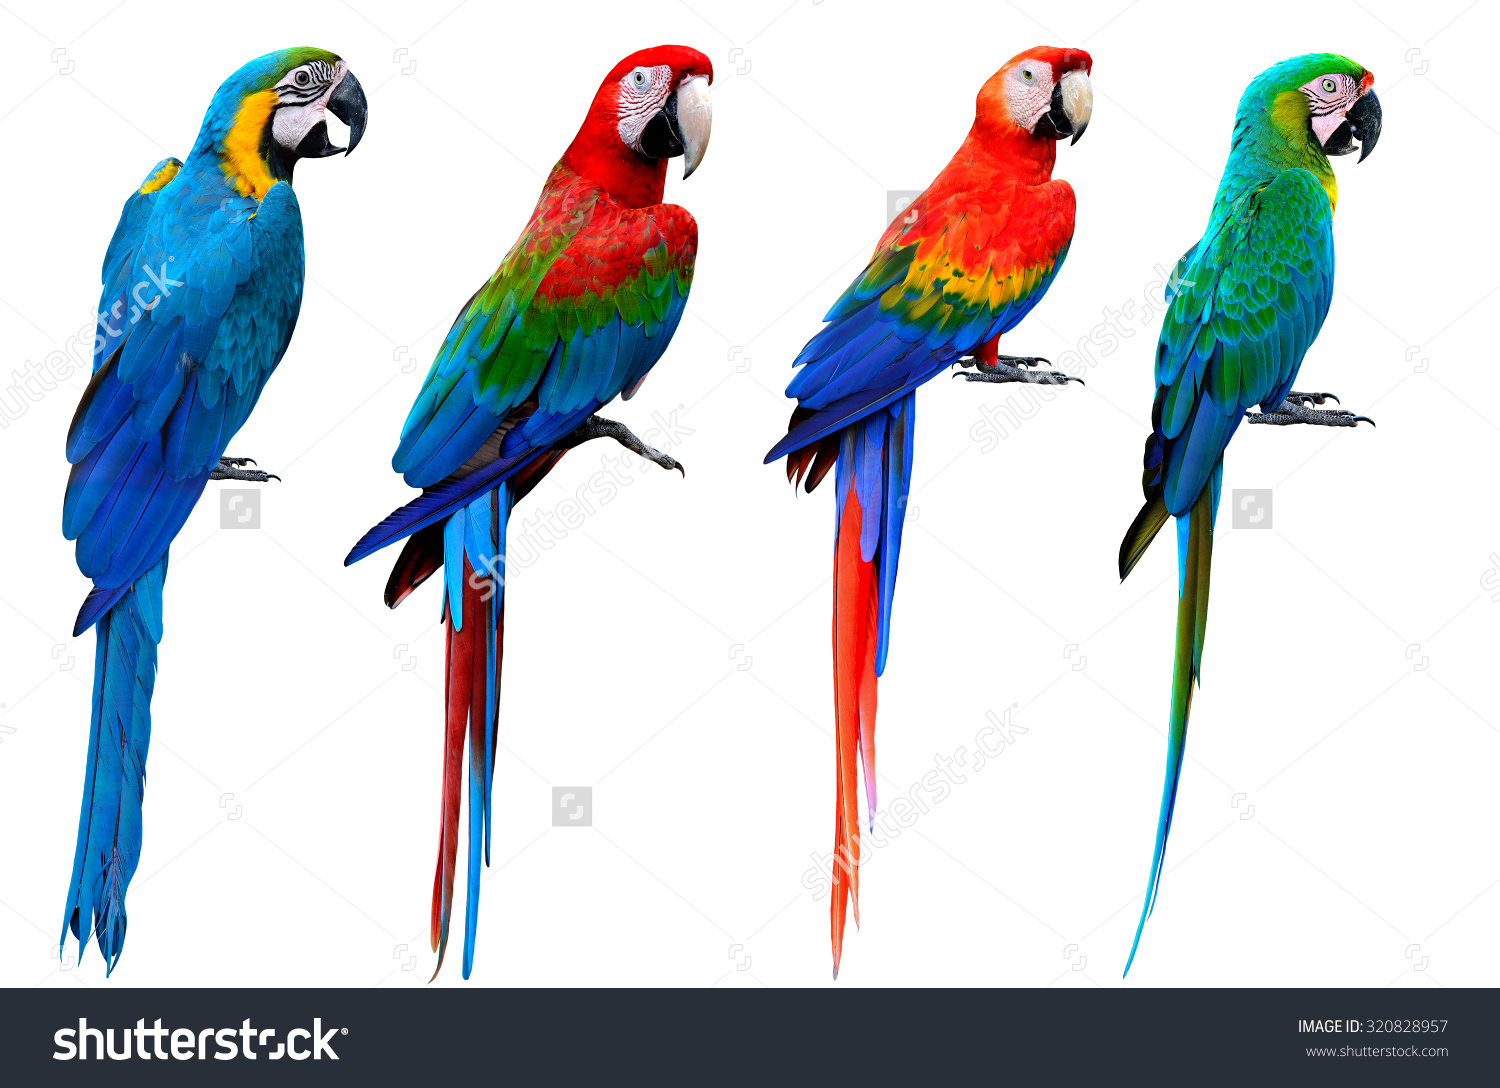 Collection Macaw Birds Blue Gold Greenwinged Stock Photo 320828957.